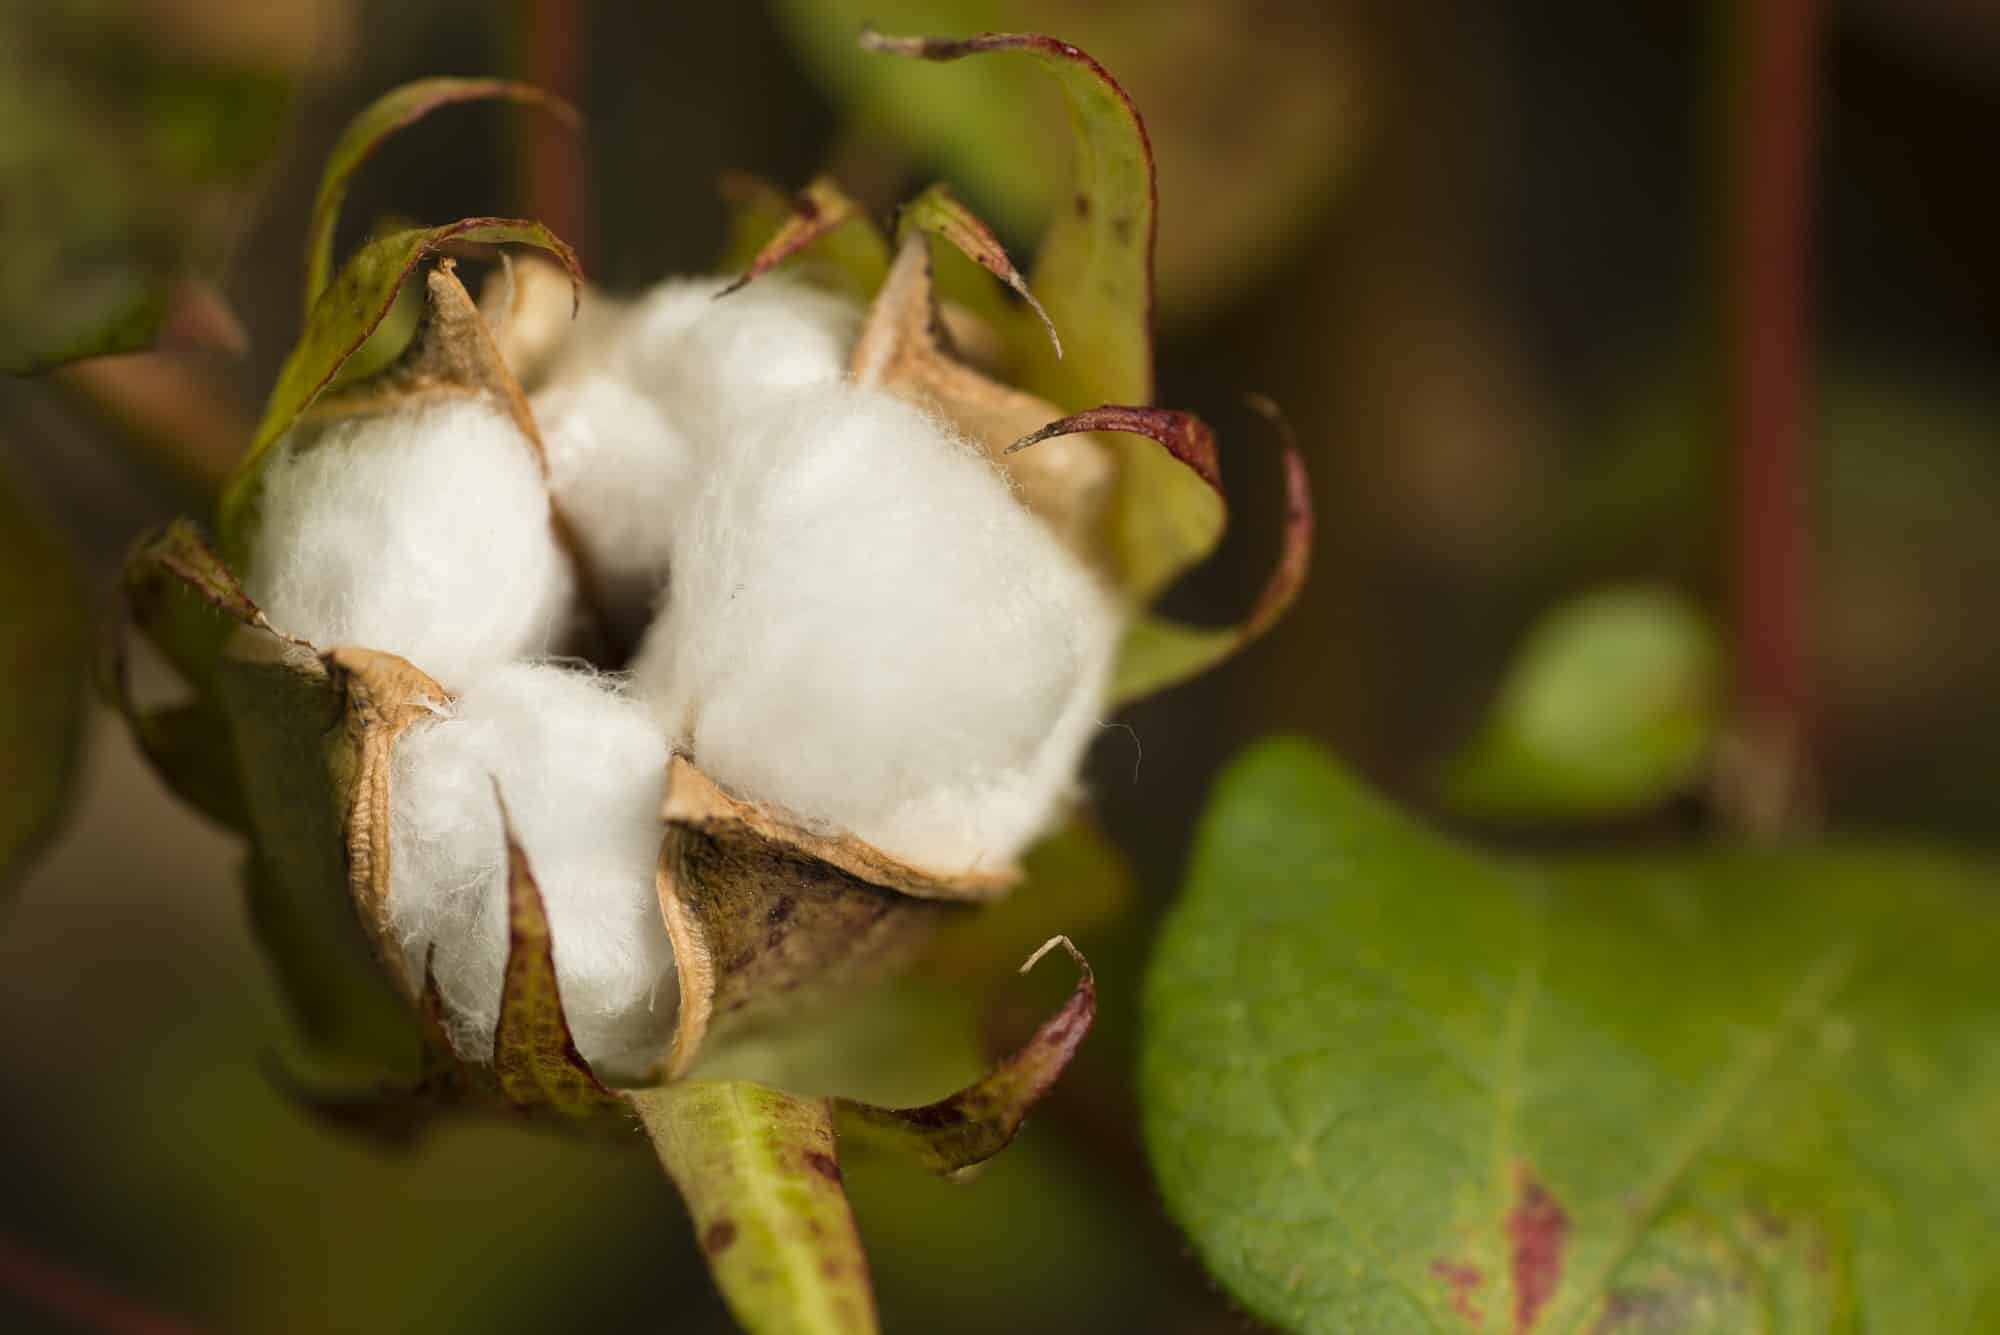 Cotton plant with seed capsule open